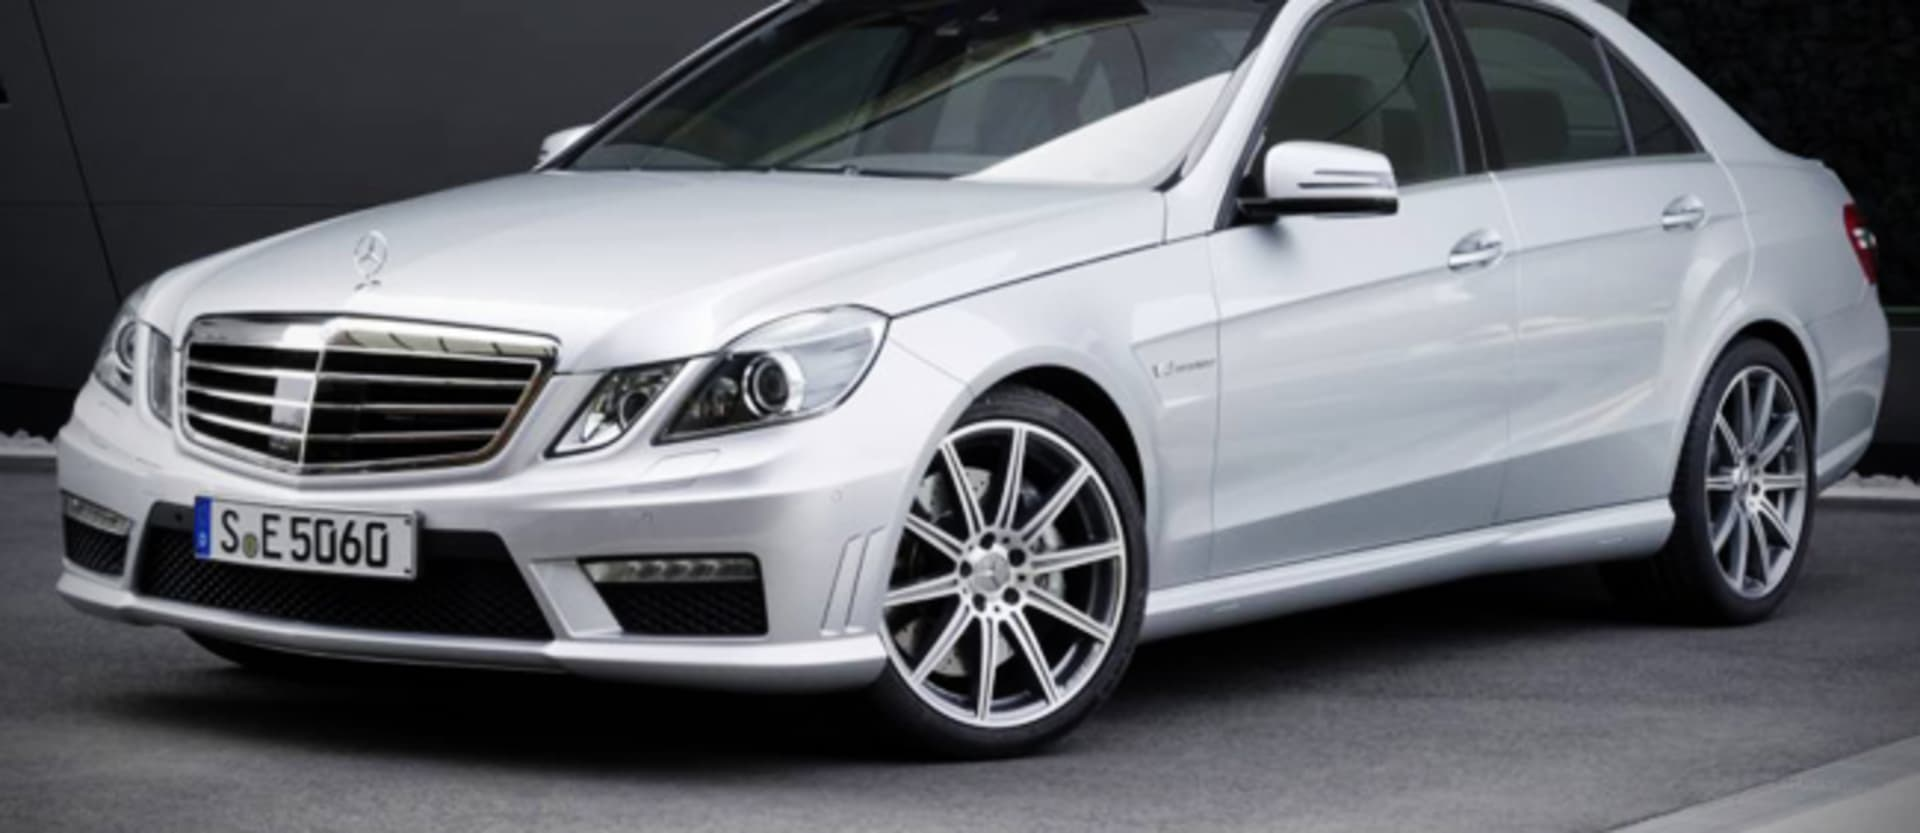 E63 AMG gets 410kW